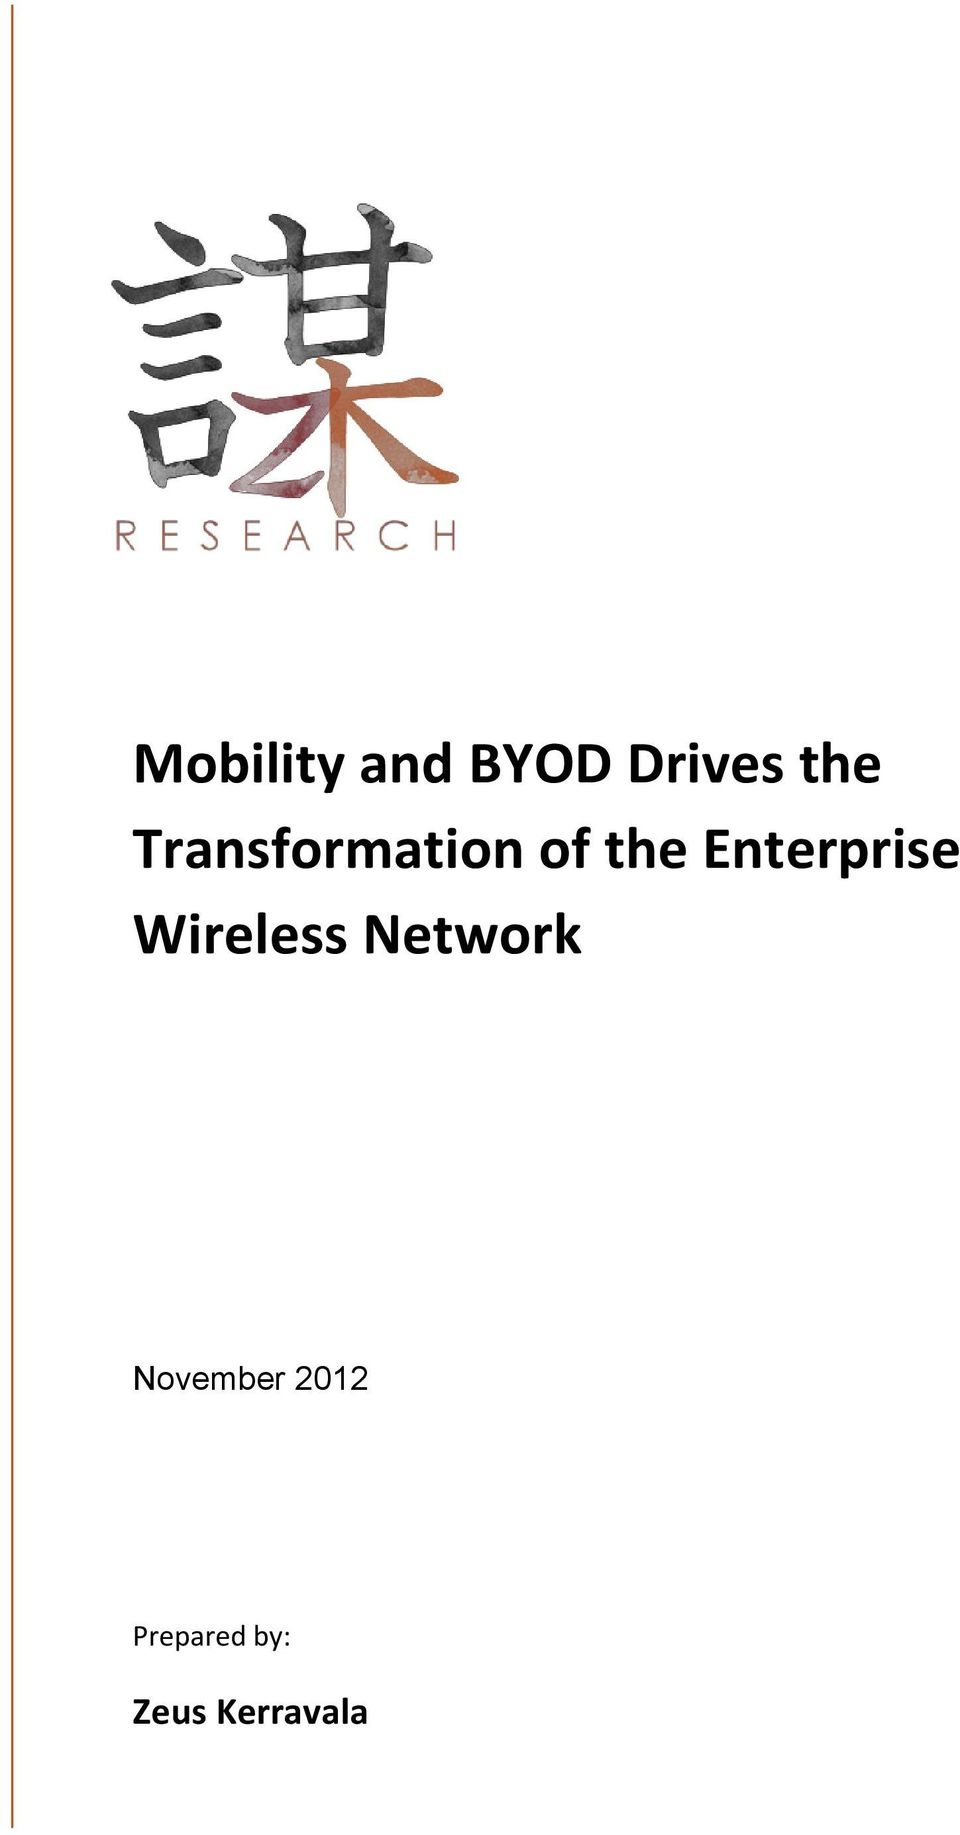 Enterprise Wireless Network